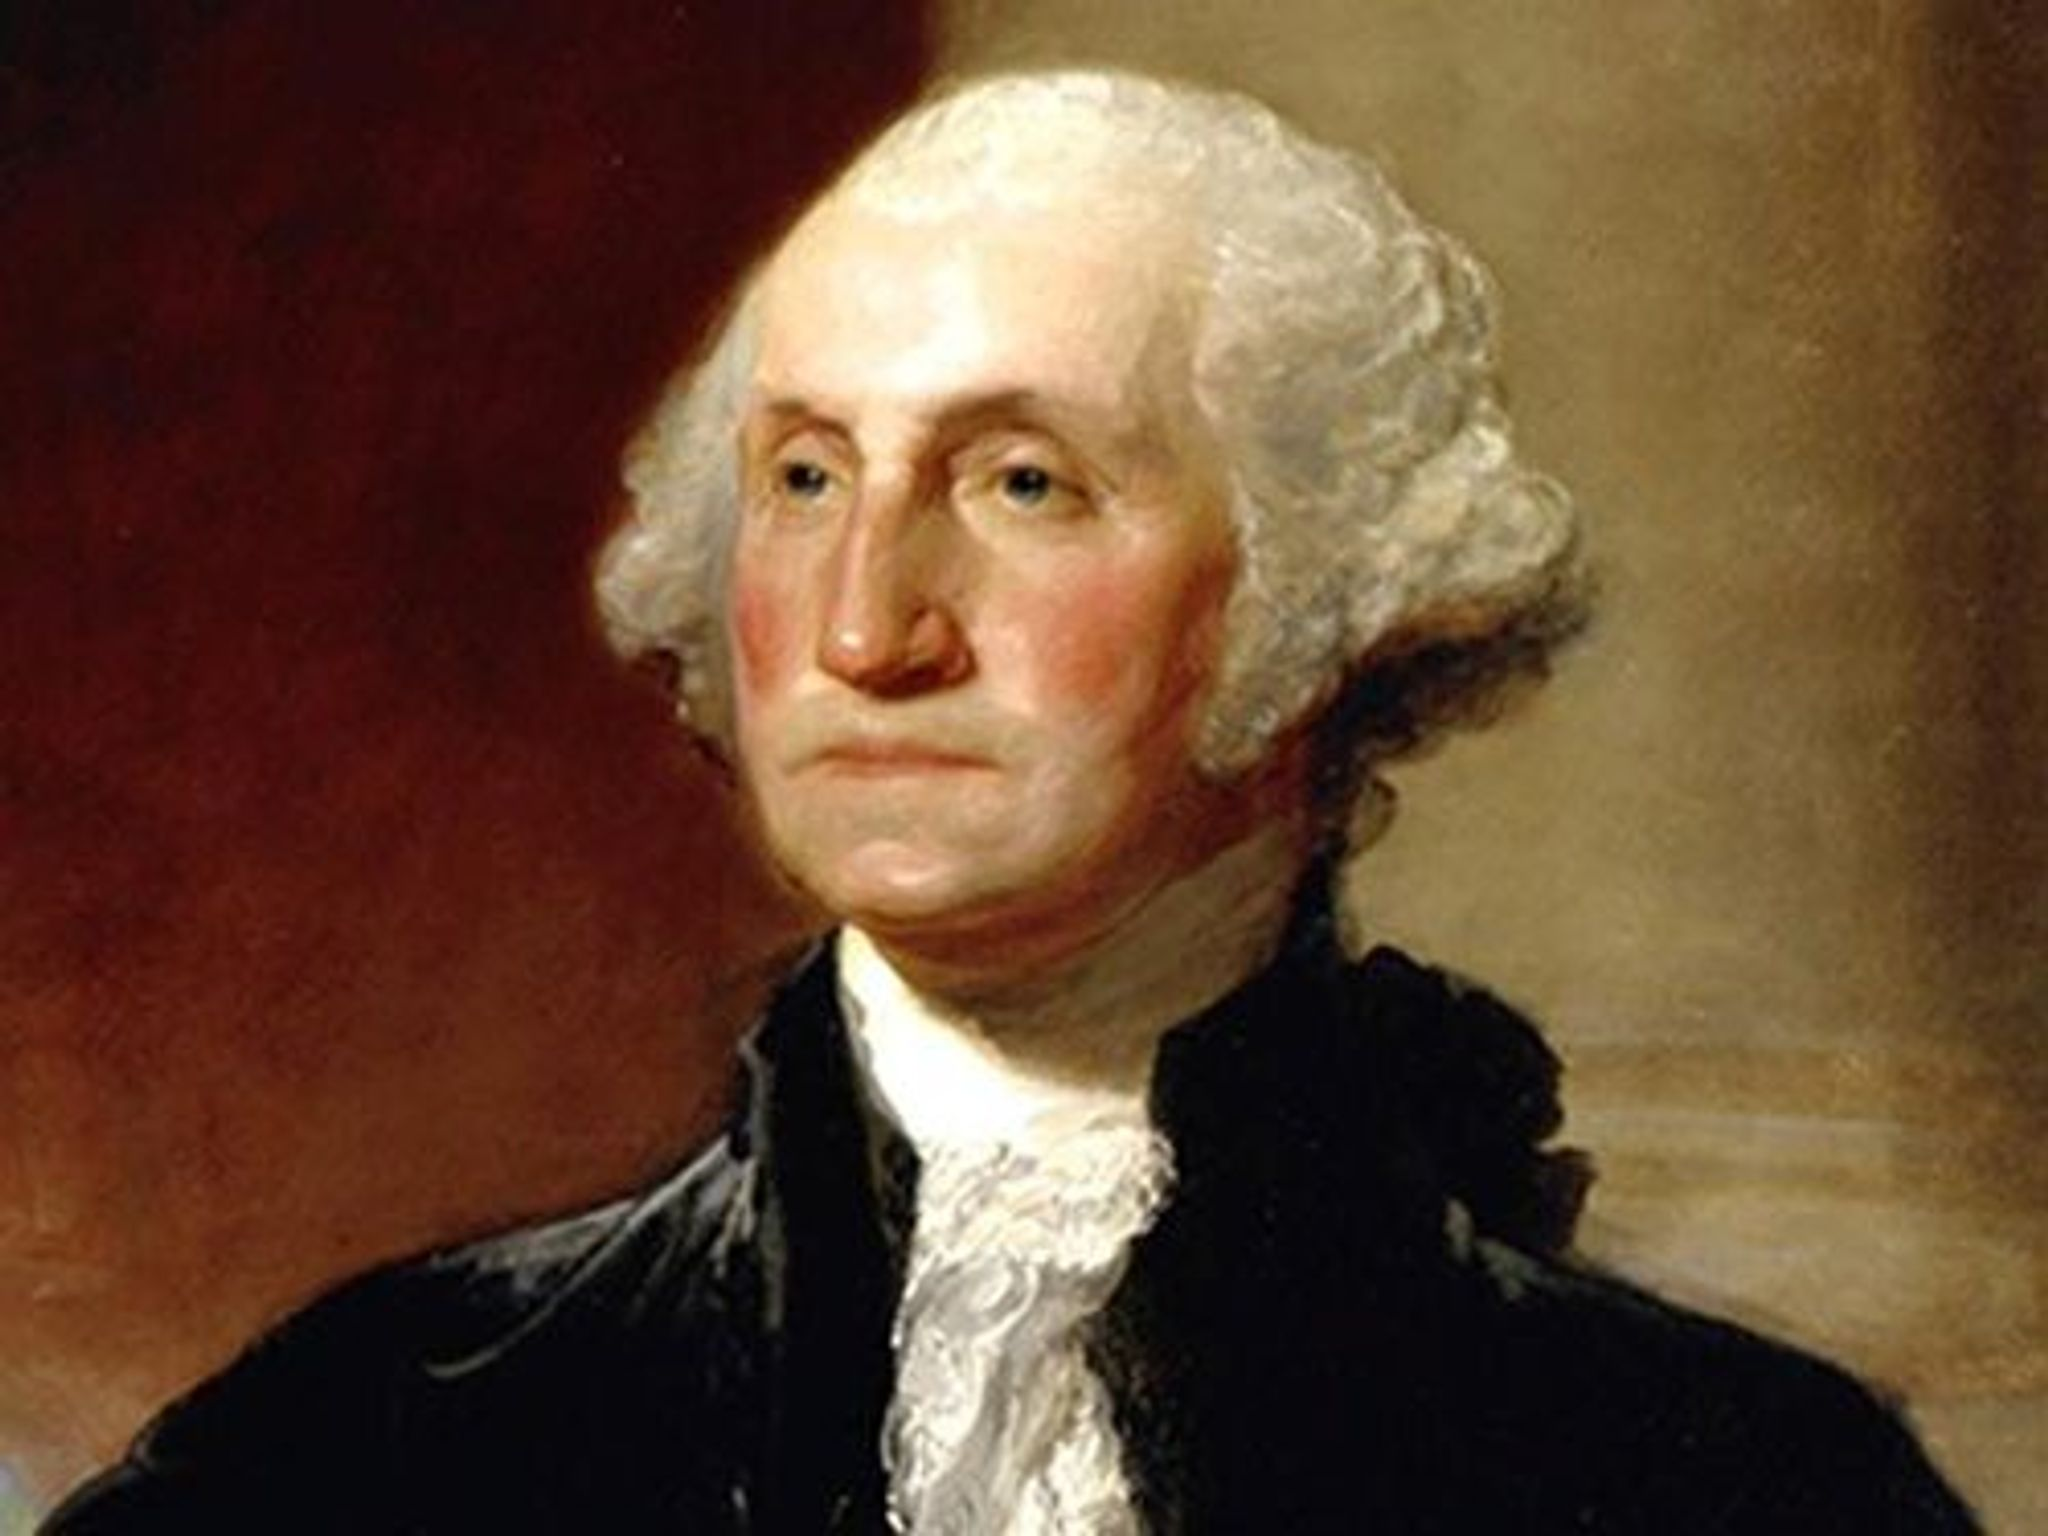 Scholastic Pulls A Birthday Cake For George Washington Book After Slavery Backlash